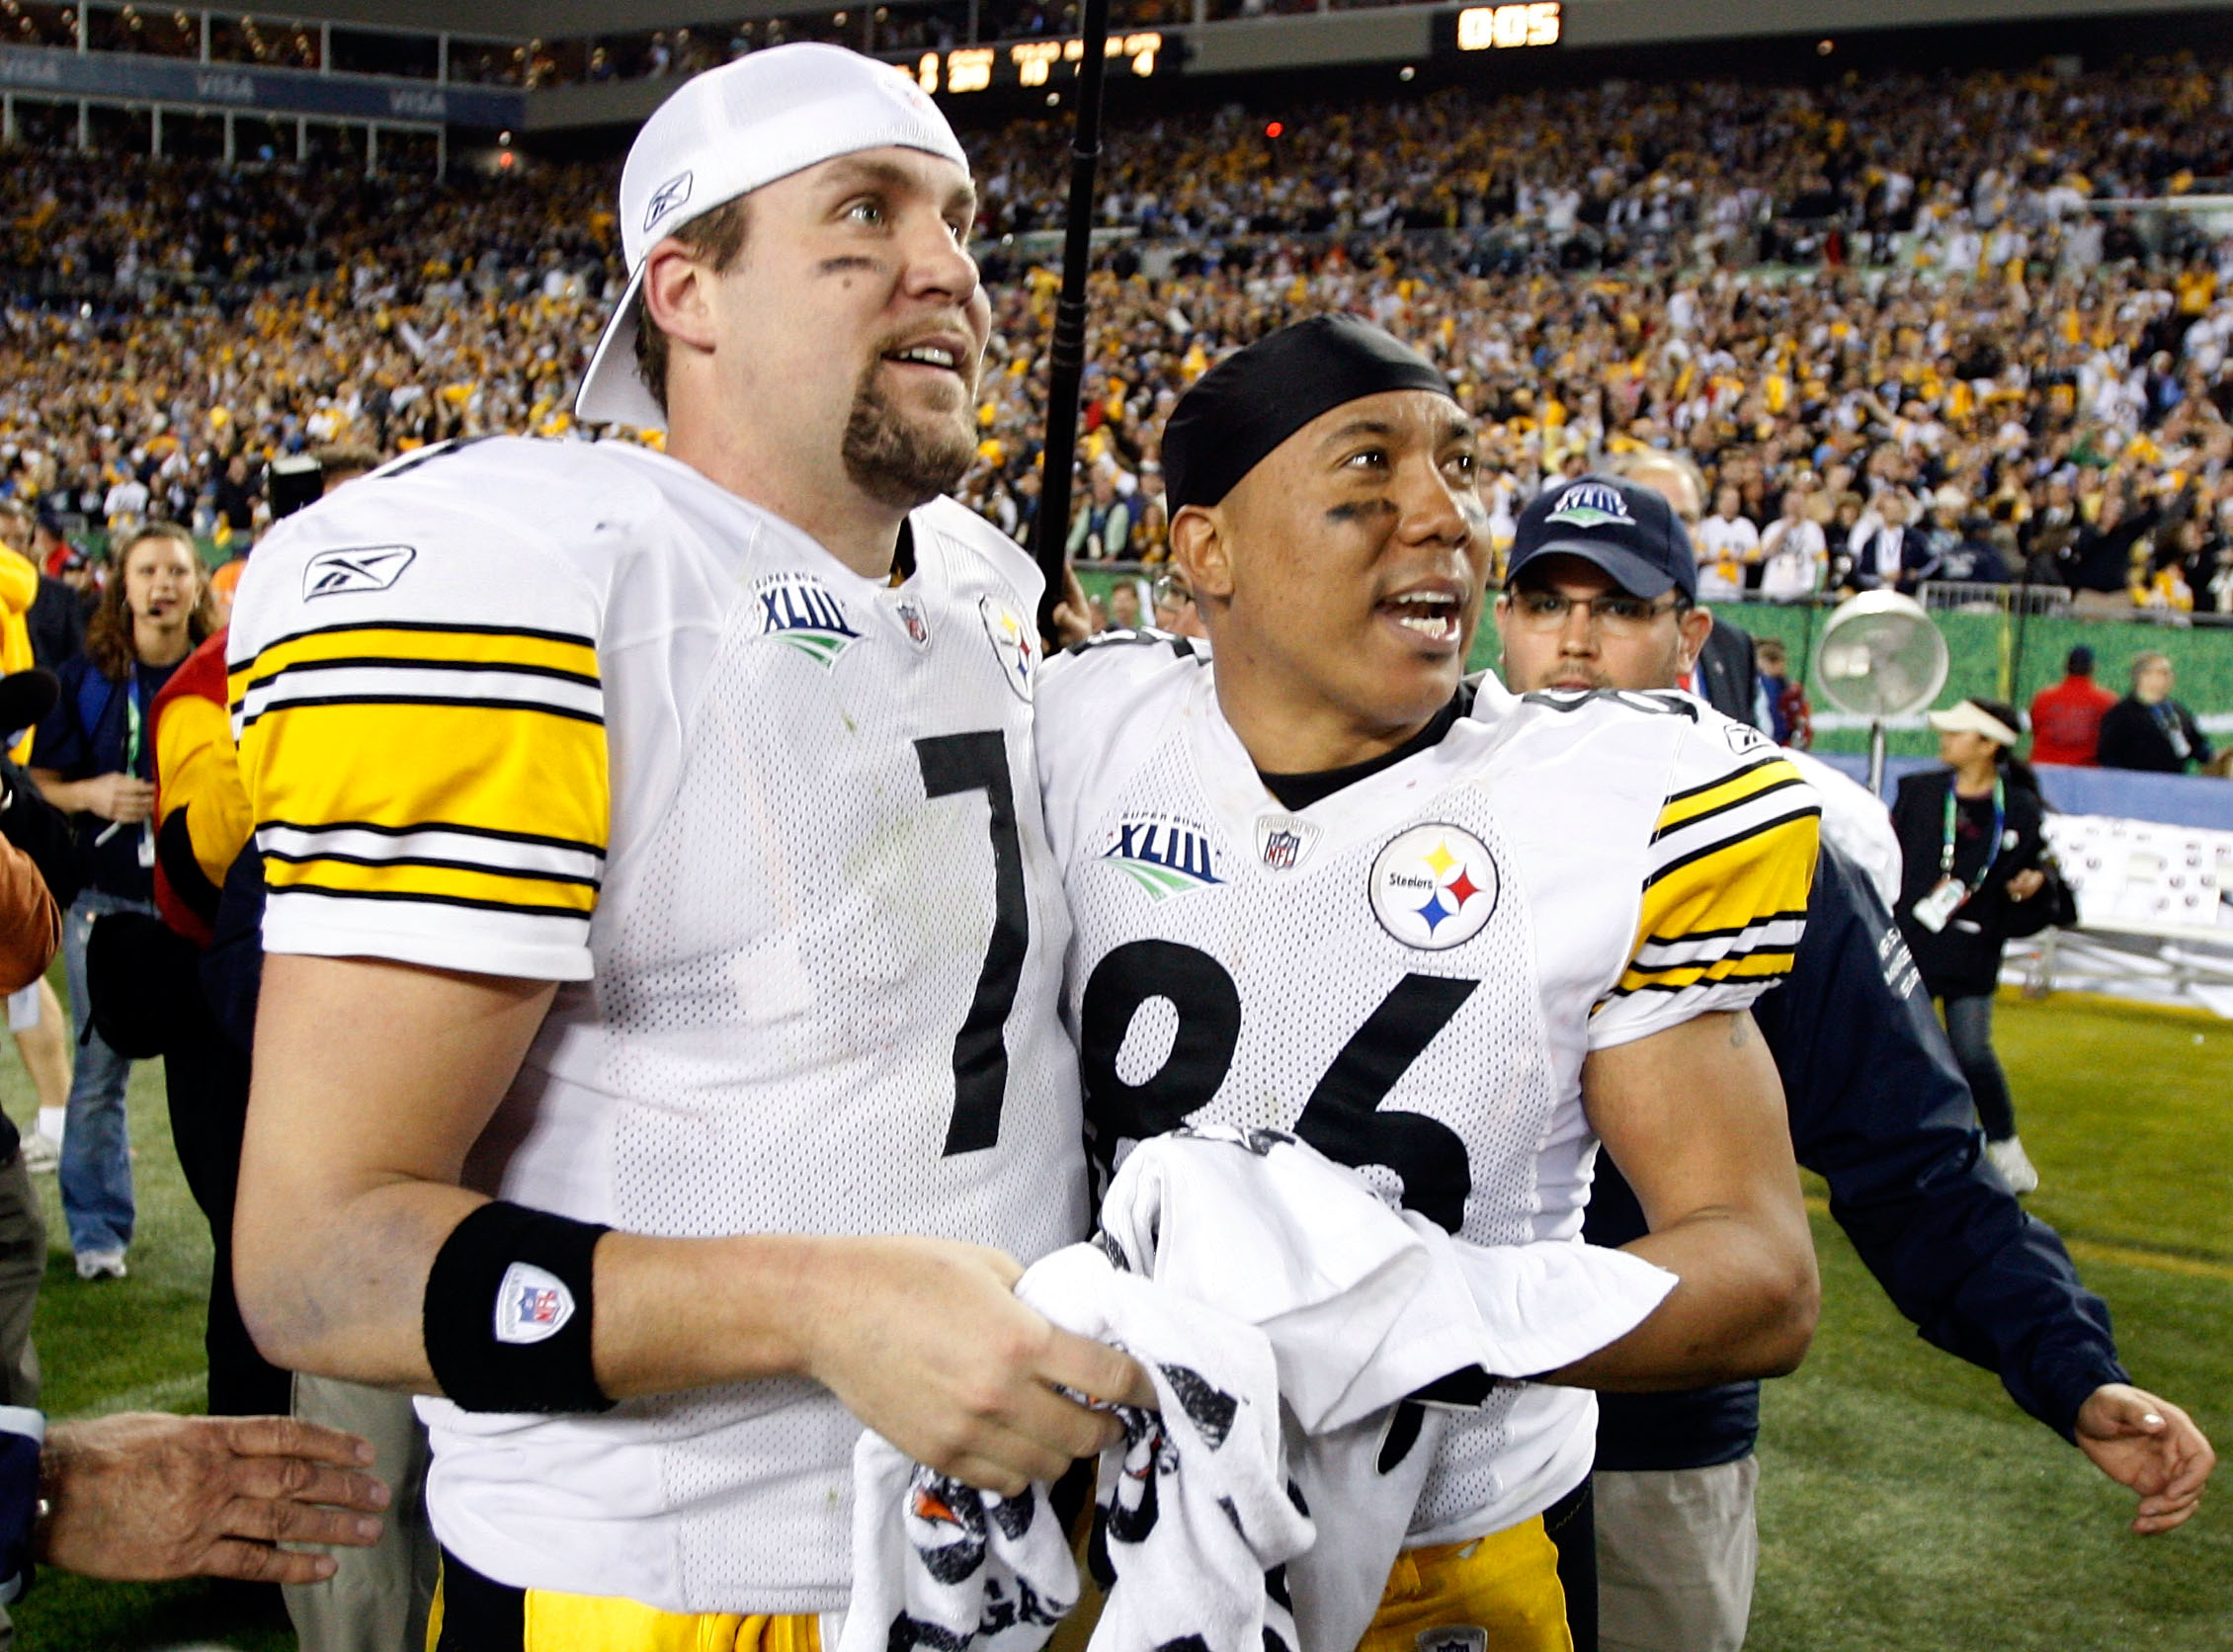 TAMPA, FL - FEBRUARY 01:  (L-R) Quarterback Ben Roethlisberger #7 and Hines Ward #86 of the Pittsburgh Steelers celebrate after their 26-23 win against the Arizona Cardinals during Super Bowl XLIII on February 1, 2009 at Raymond James Stadium in Tampa, Fl